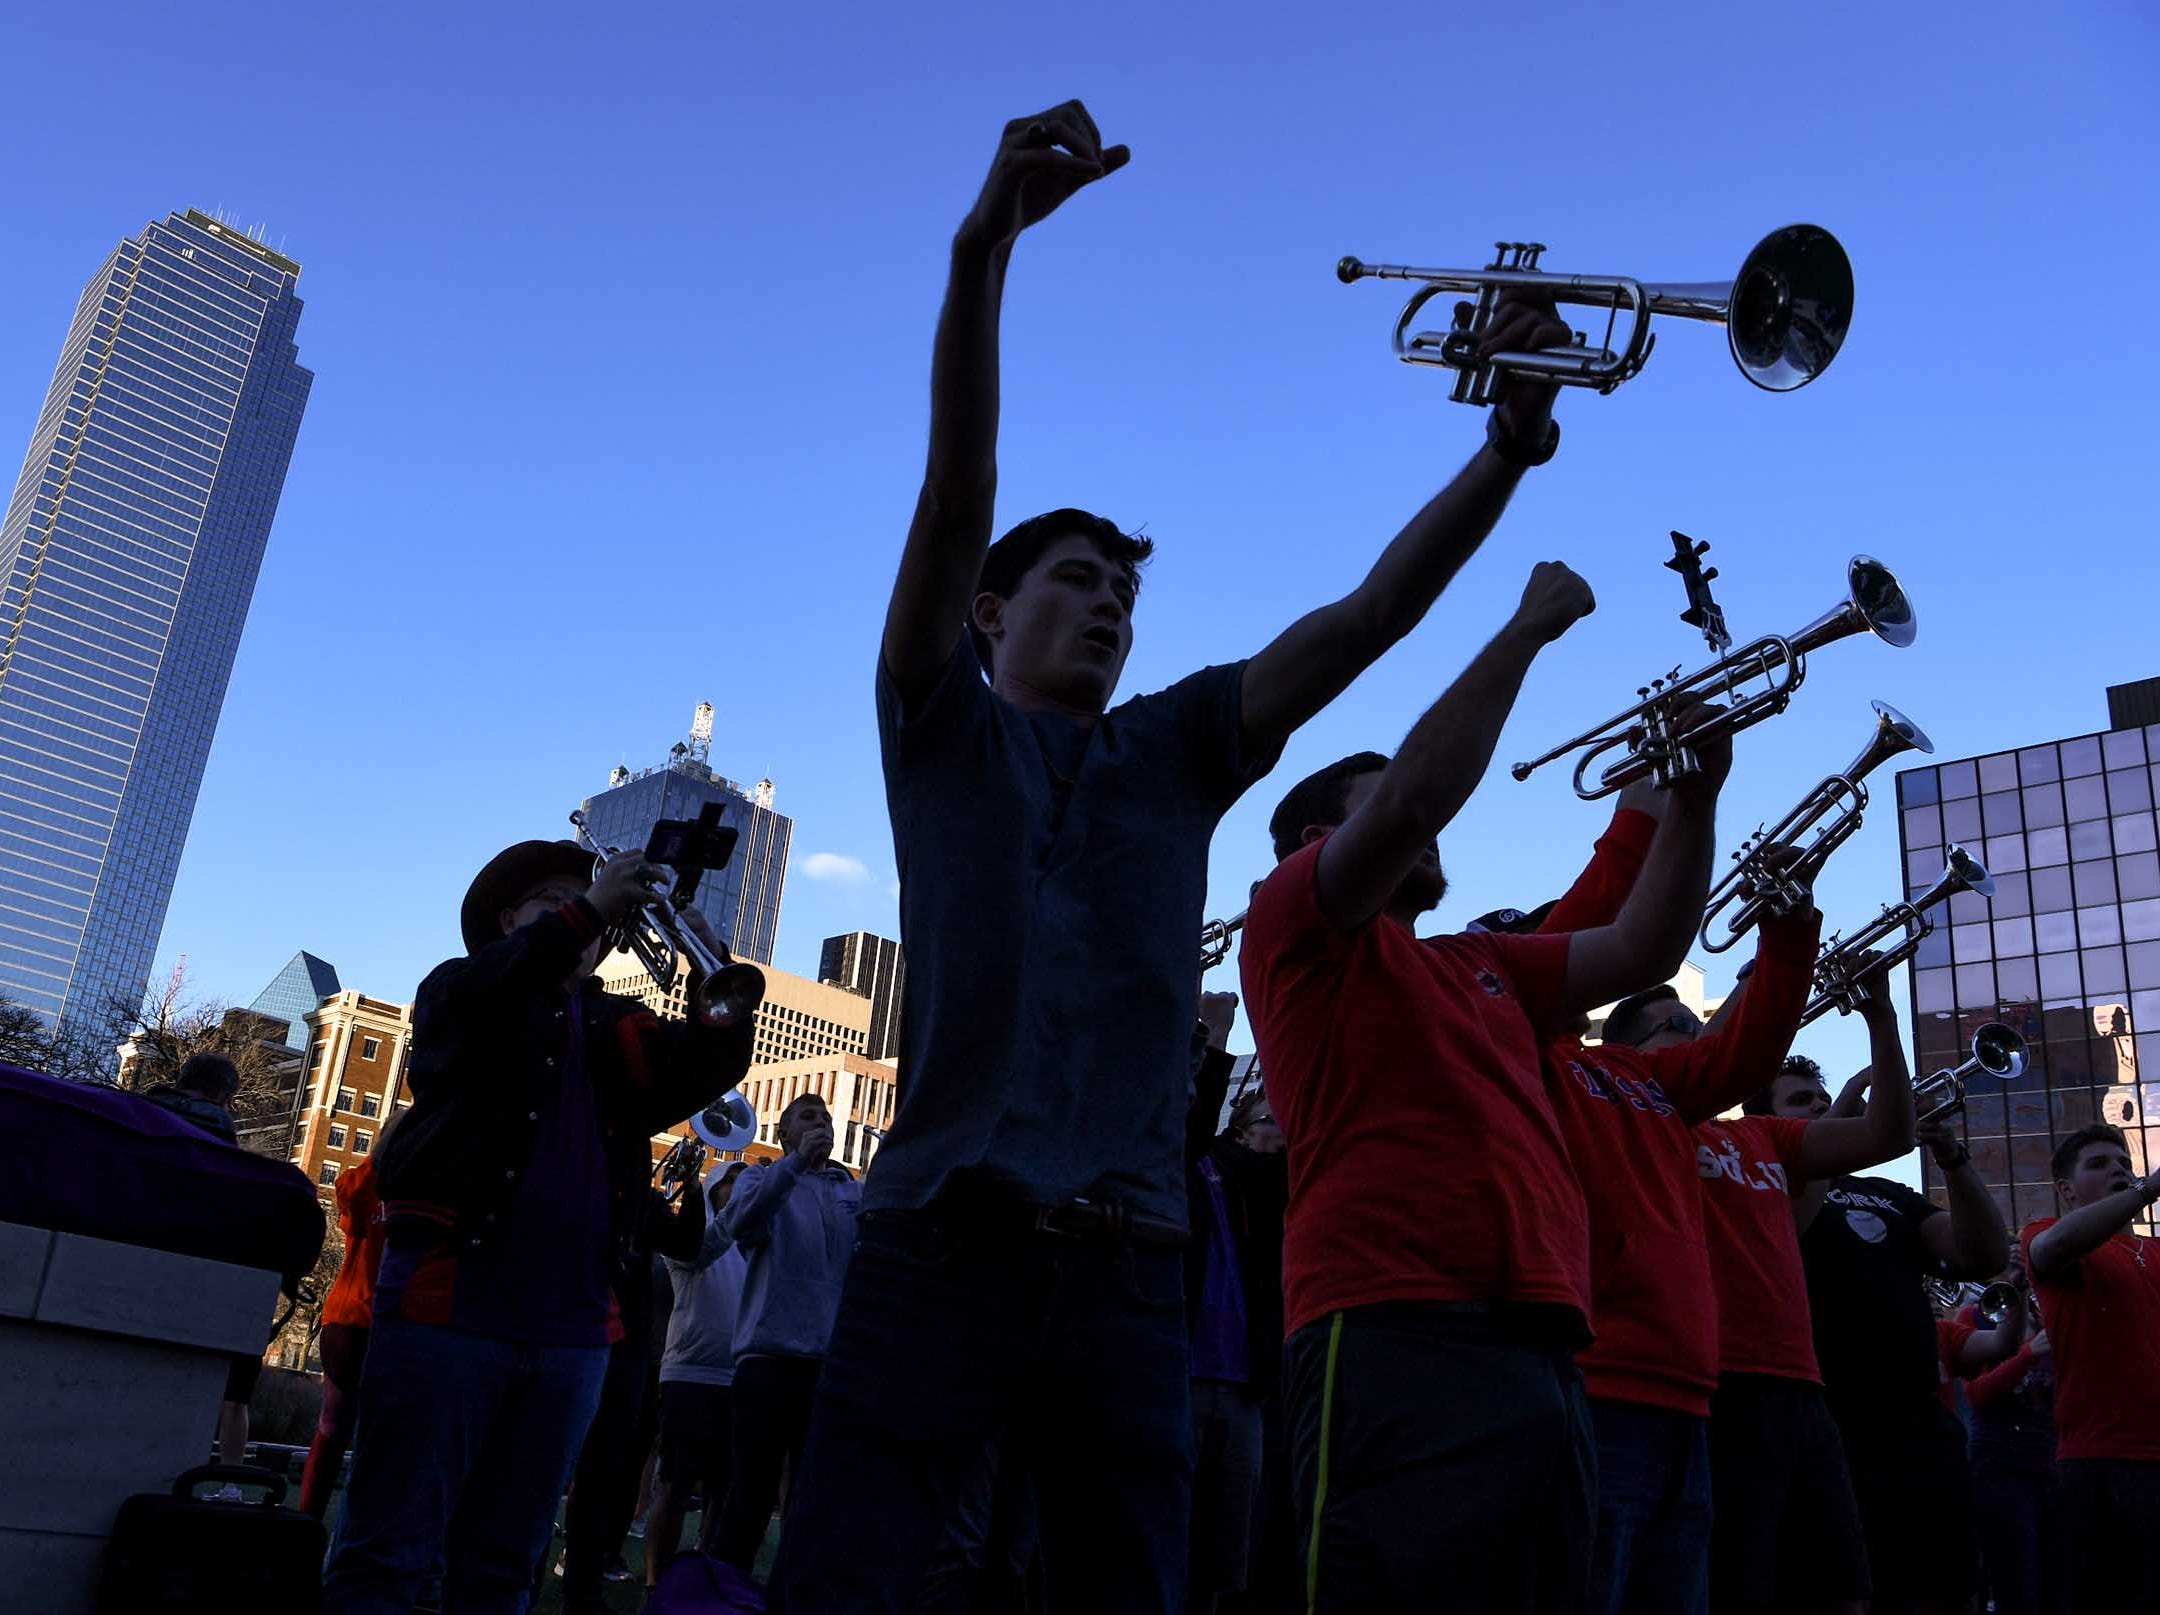 Will McAlhany, middle, pumps his fists with bandmates during Clemson Band practice outside the Omni in Dallas December 27, 2018.